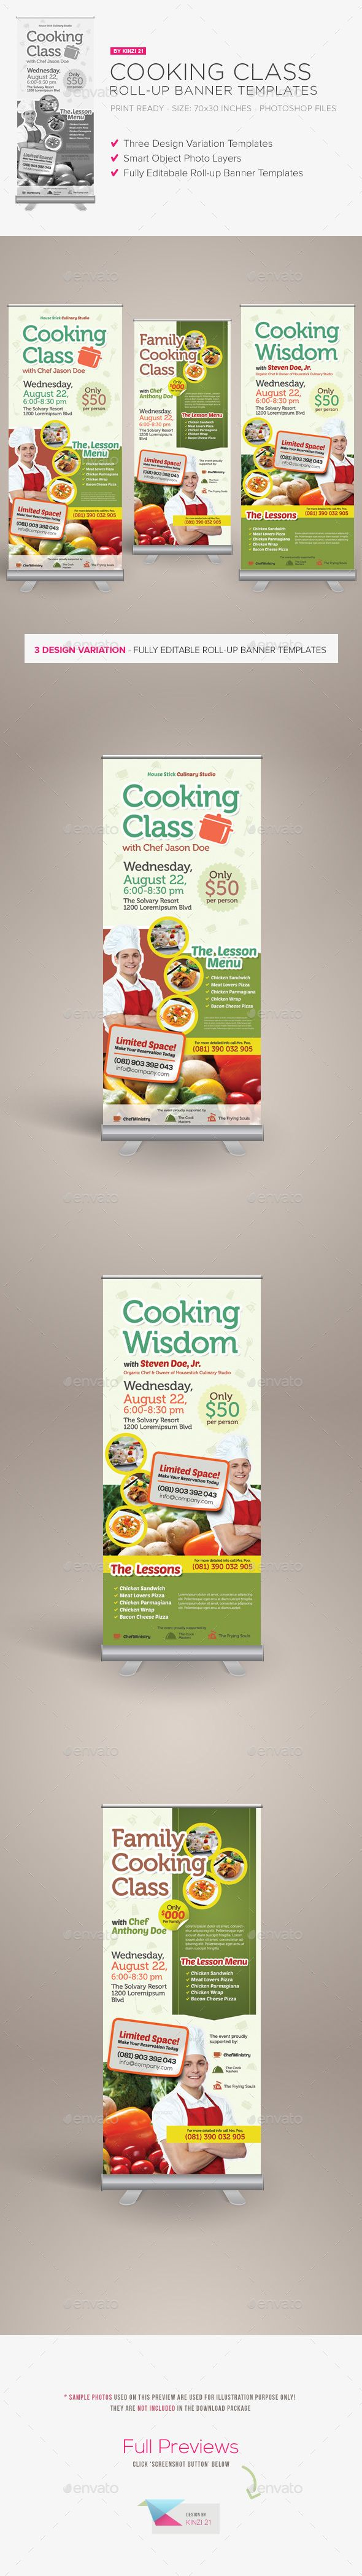 Cooking Class Roll-up Banner Template PSD #design Download: http://graphicriver.net/item/cooking-class-rollup-banner-templates/14261595?ref=ksioks